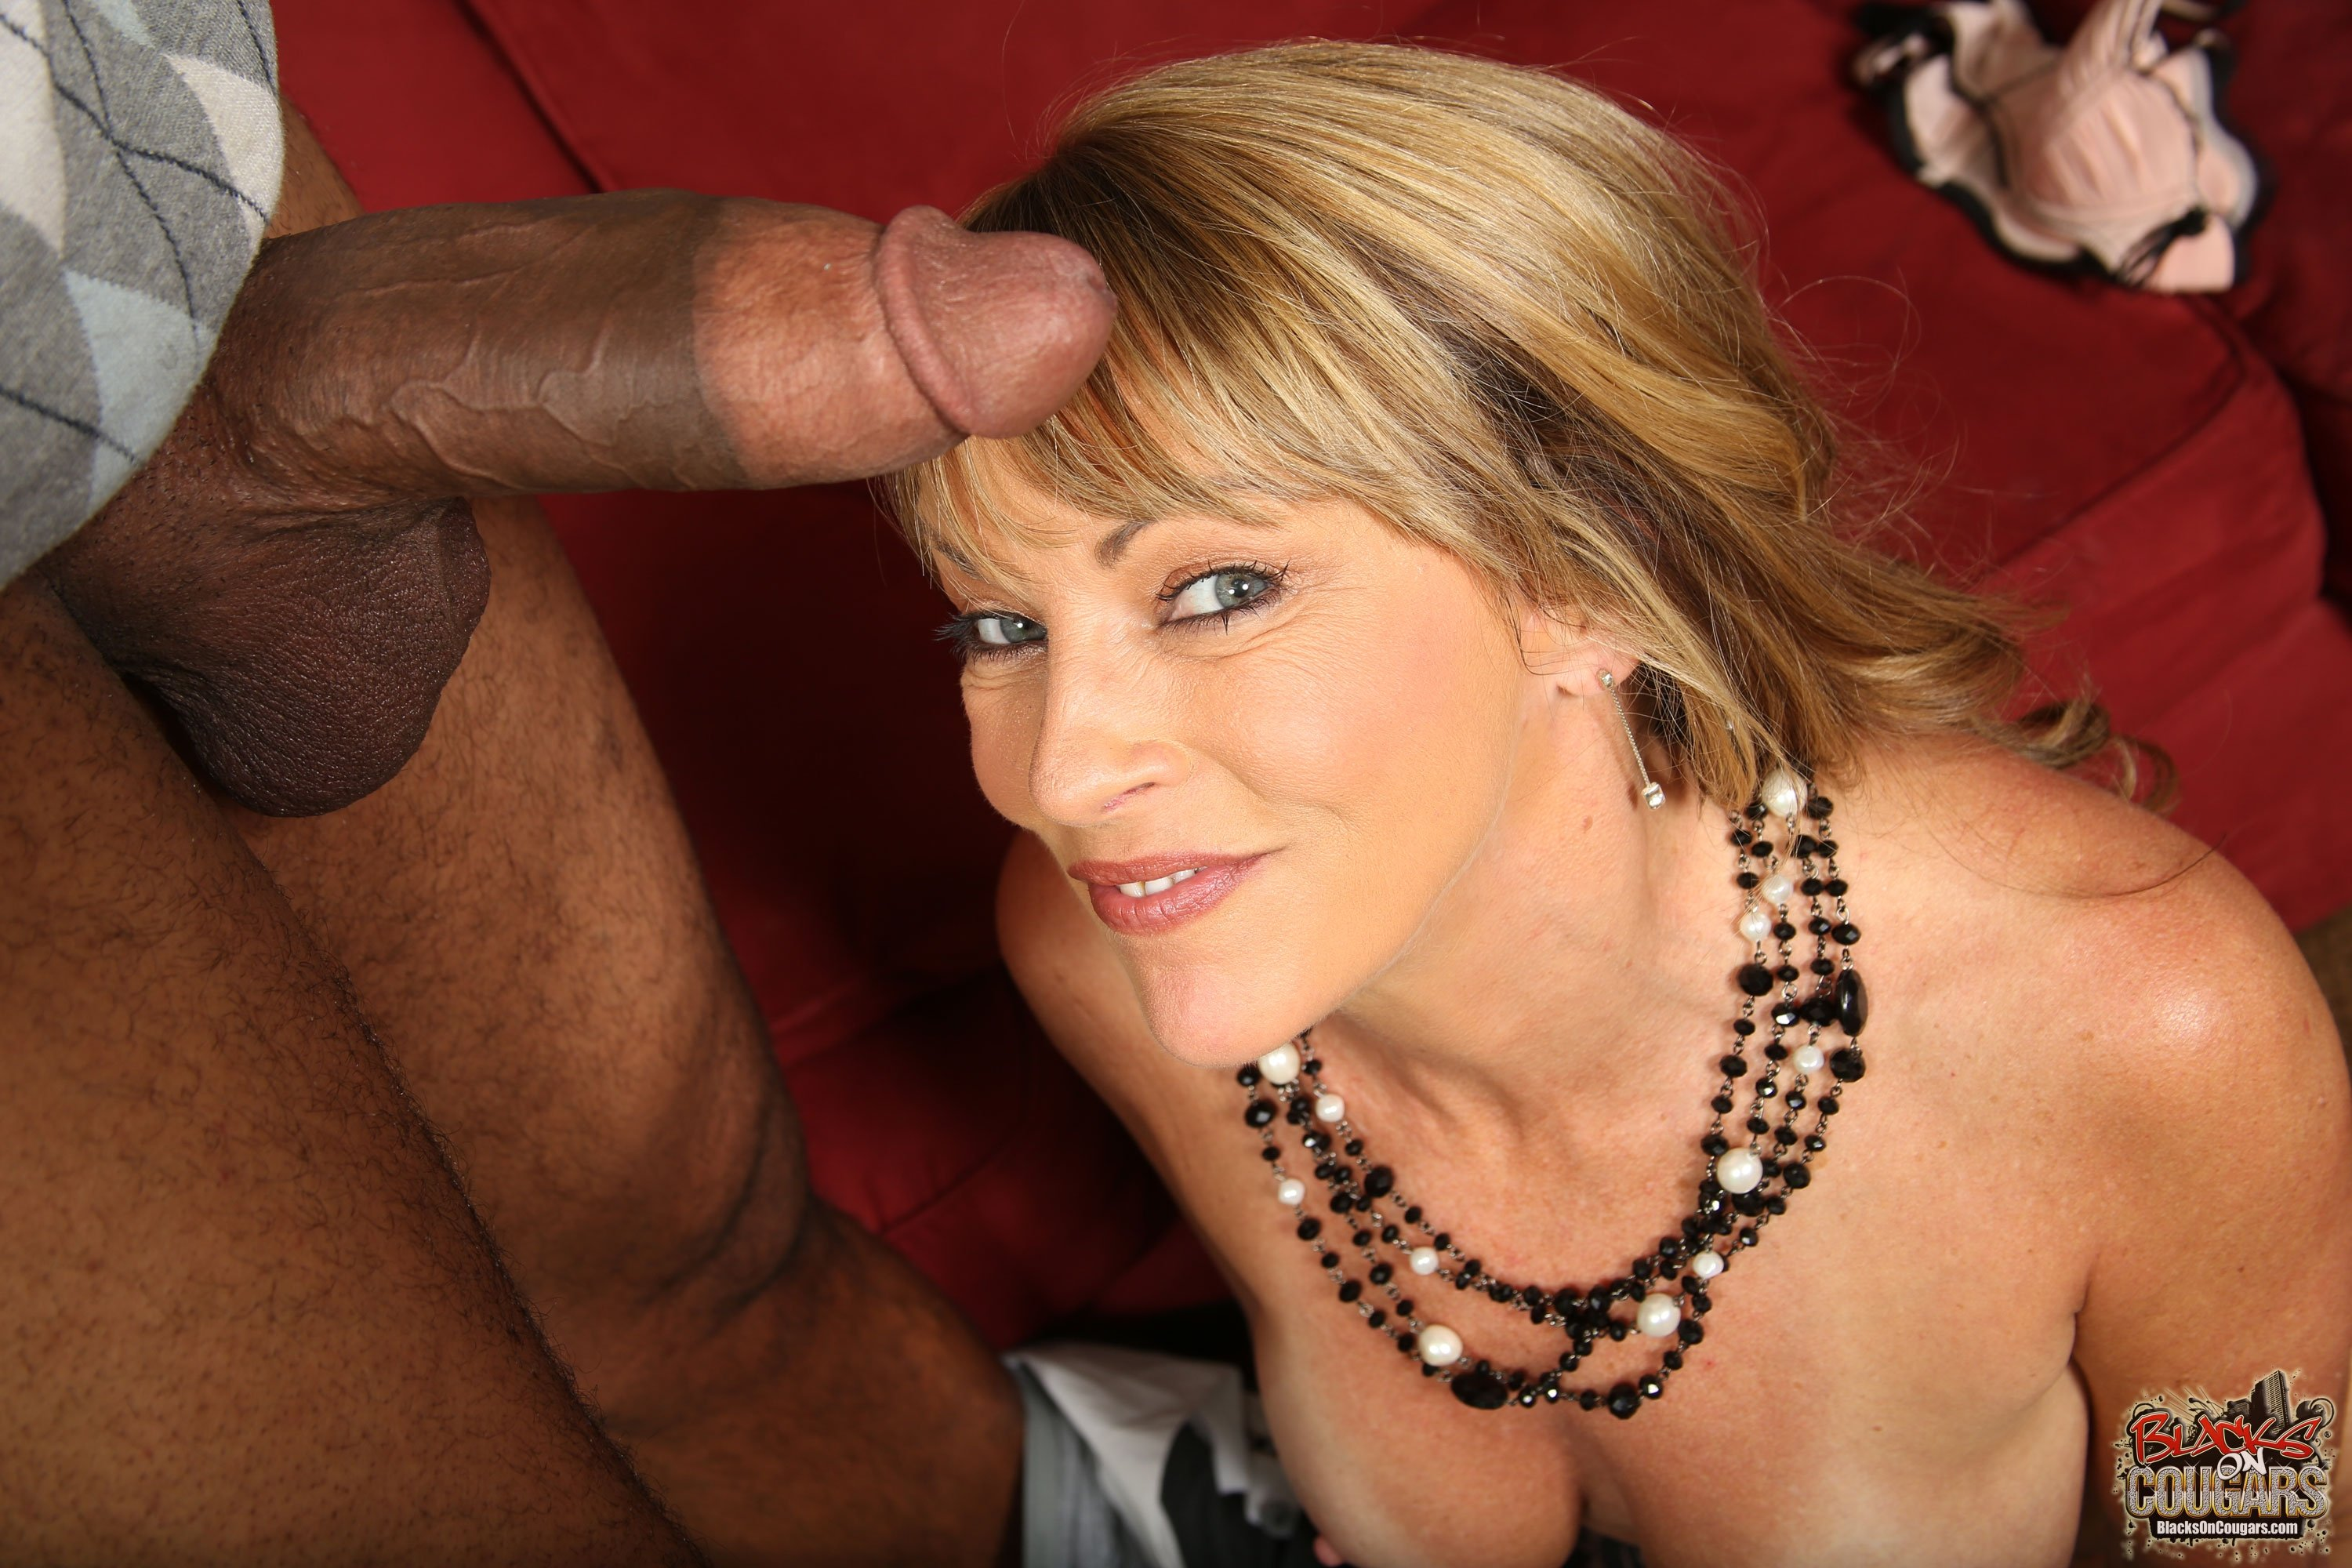 Shayla Laveaux Interracial Porn Videos